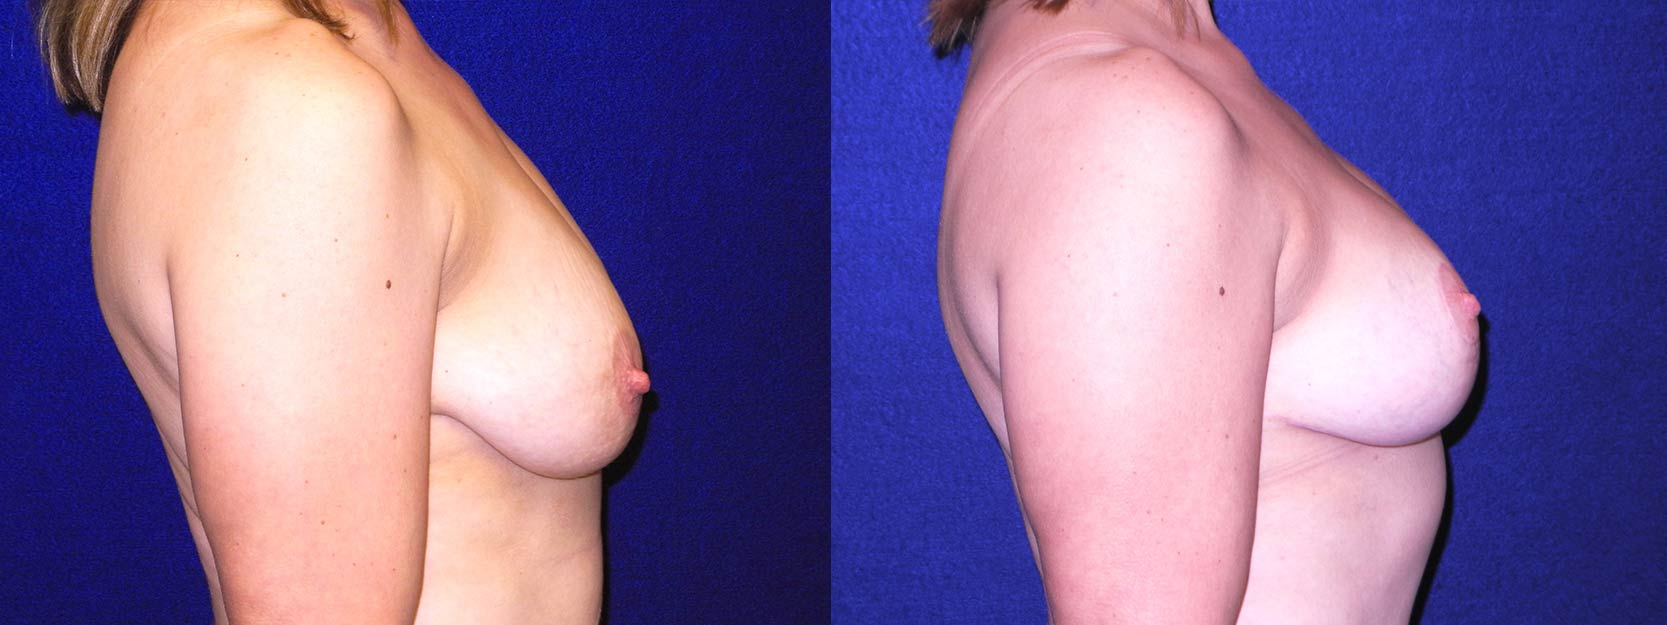 Right Profile View - Breast Lift After Pregnancy & Weight Loss